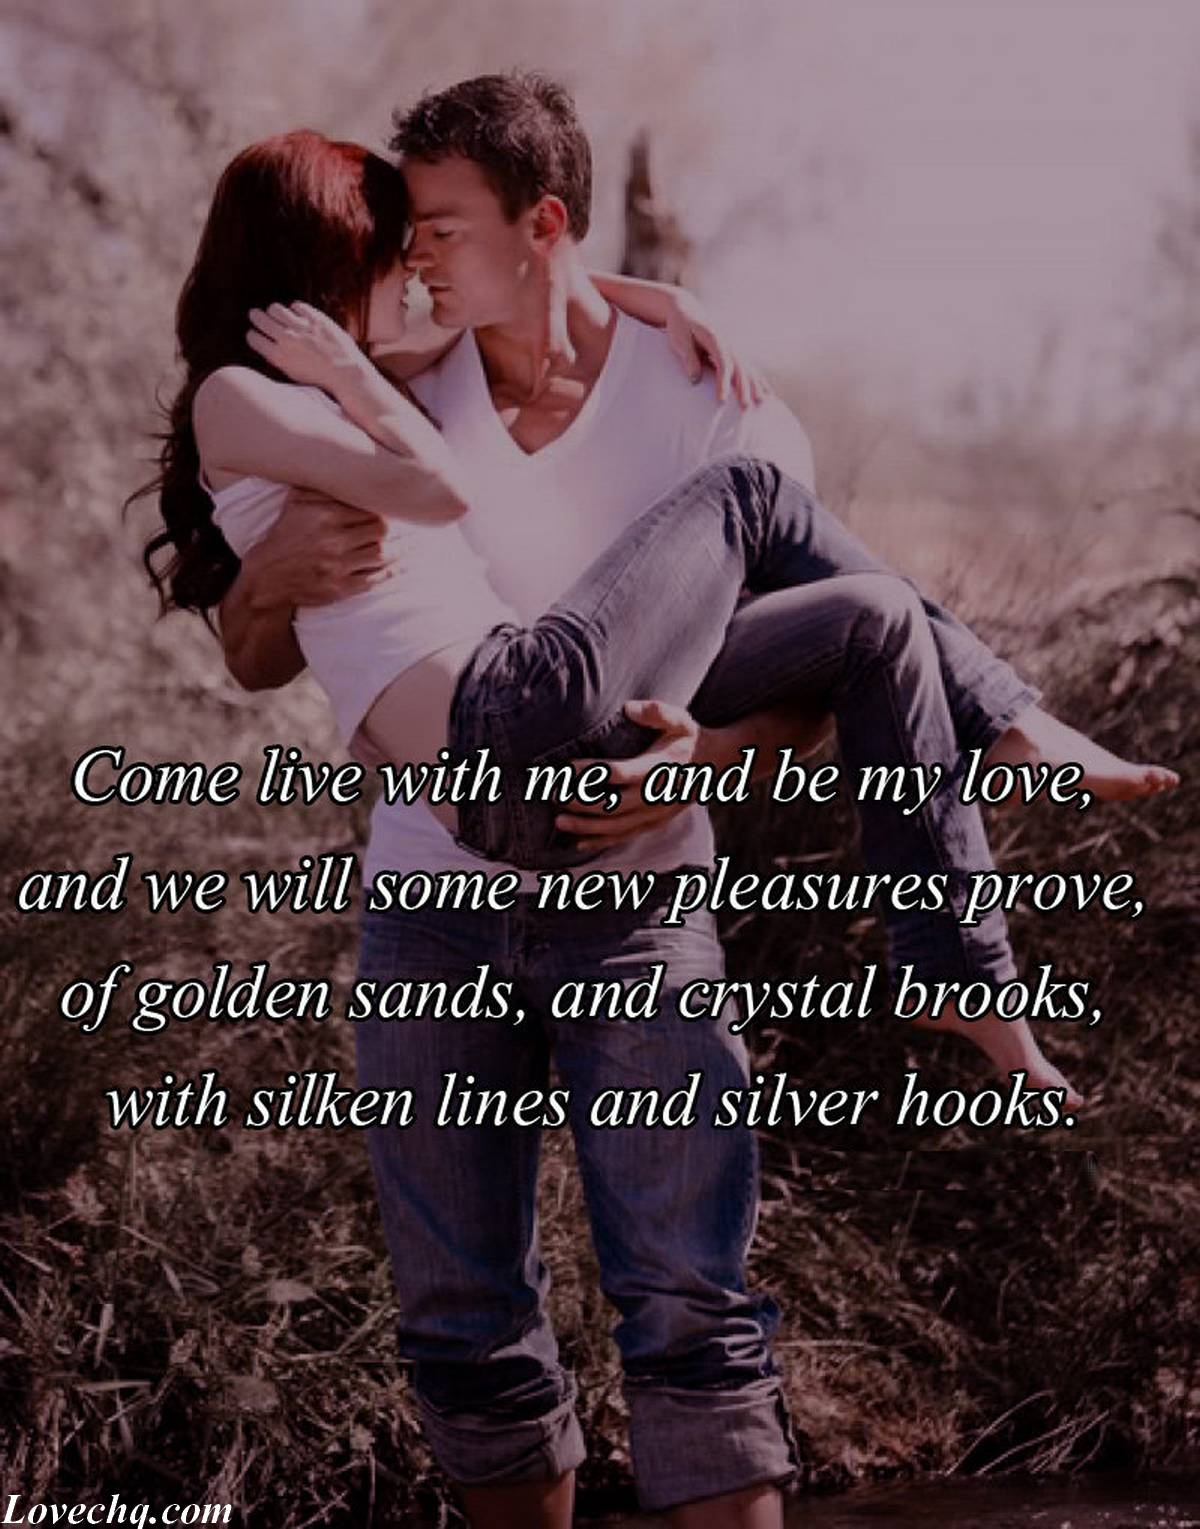 Sexy Love Quotes For Her. QuotesGram